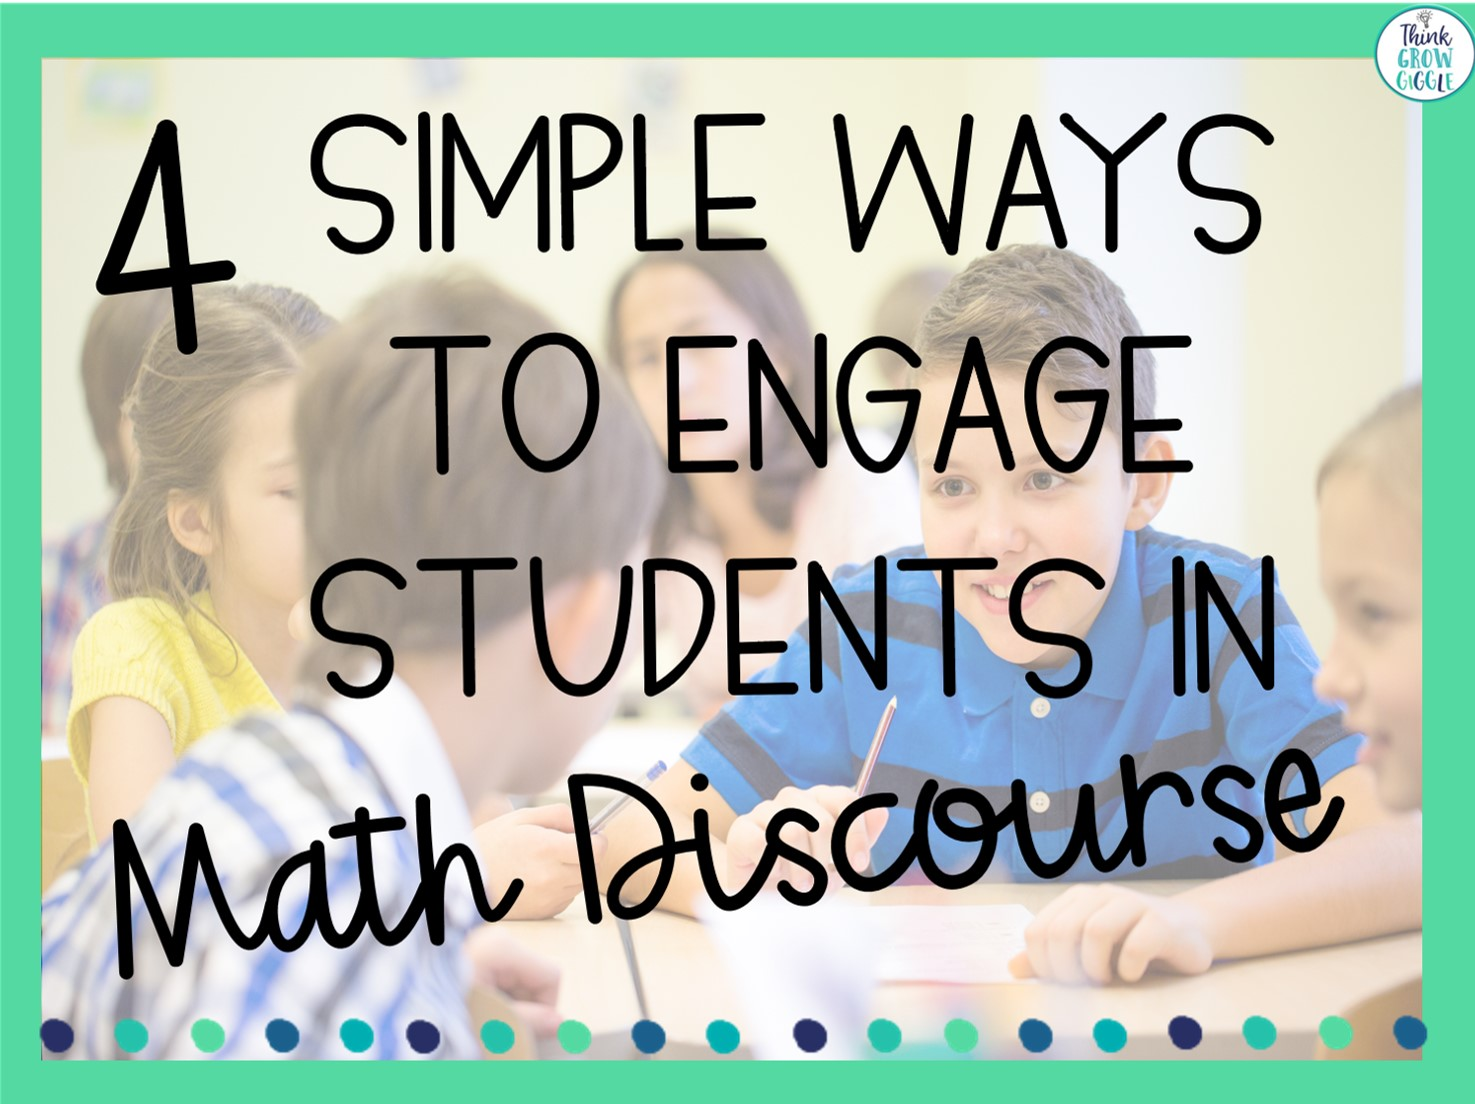 4 Simple Ways to Engage Students in Meaningful Mathematical Discourse -  Think Grow Giggle [ 1104 x 1475 Pixel ]